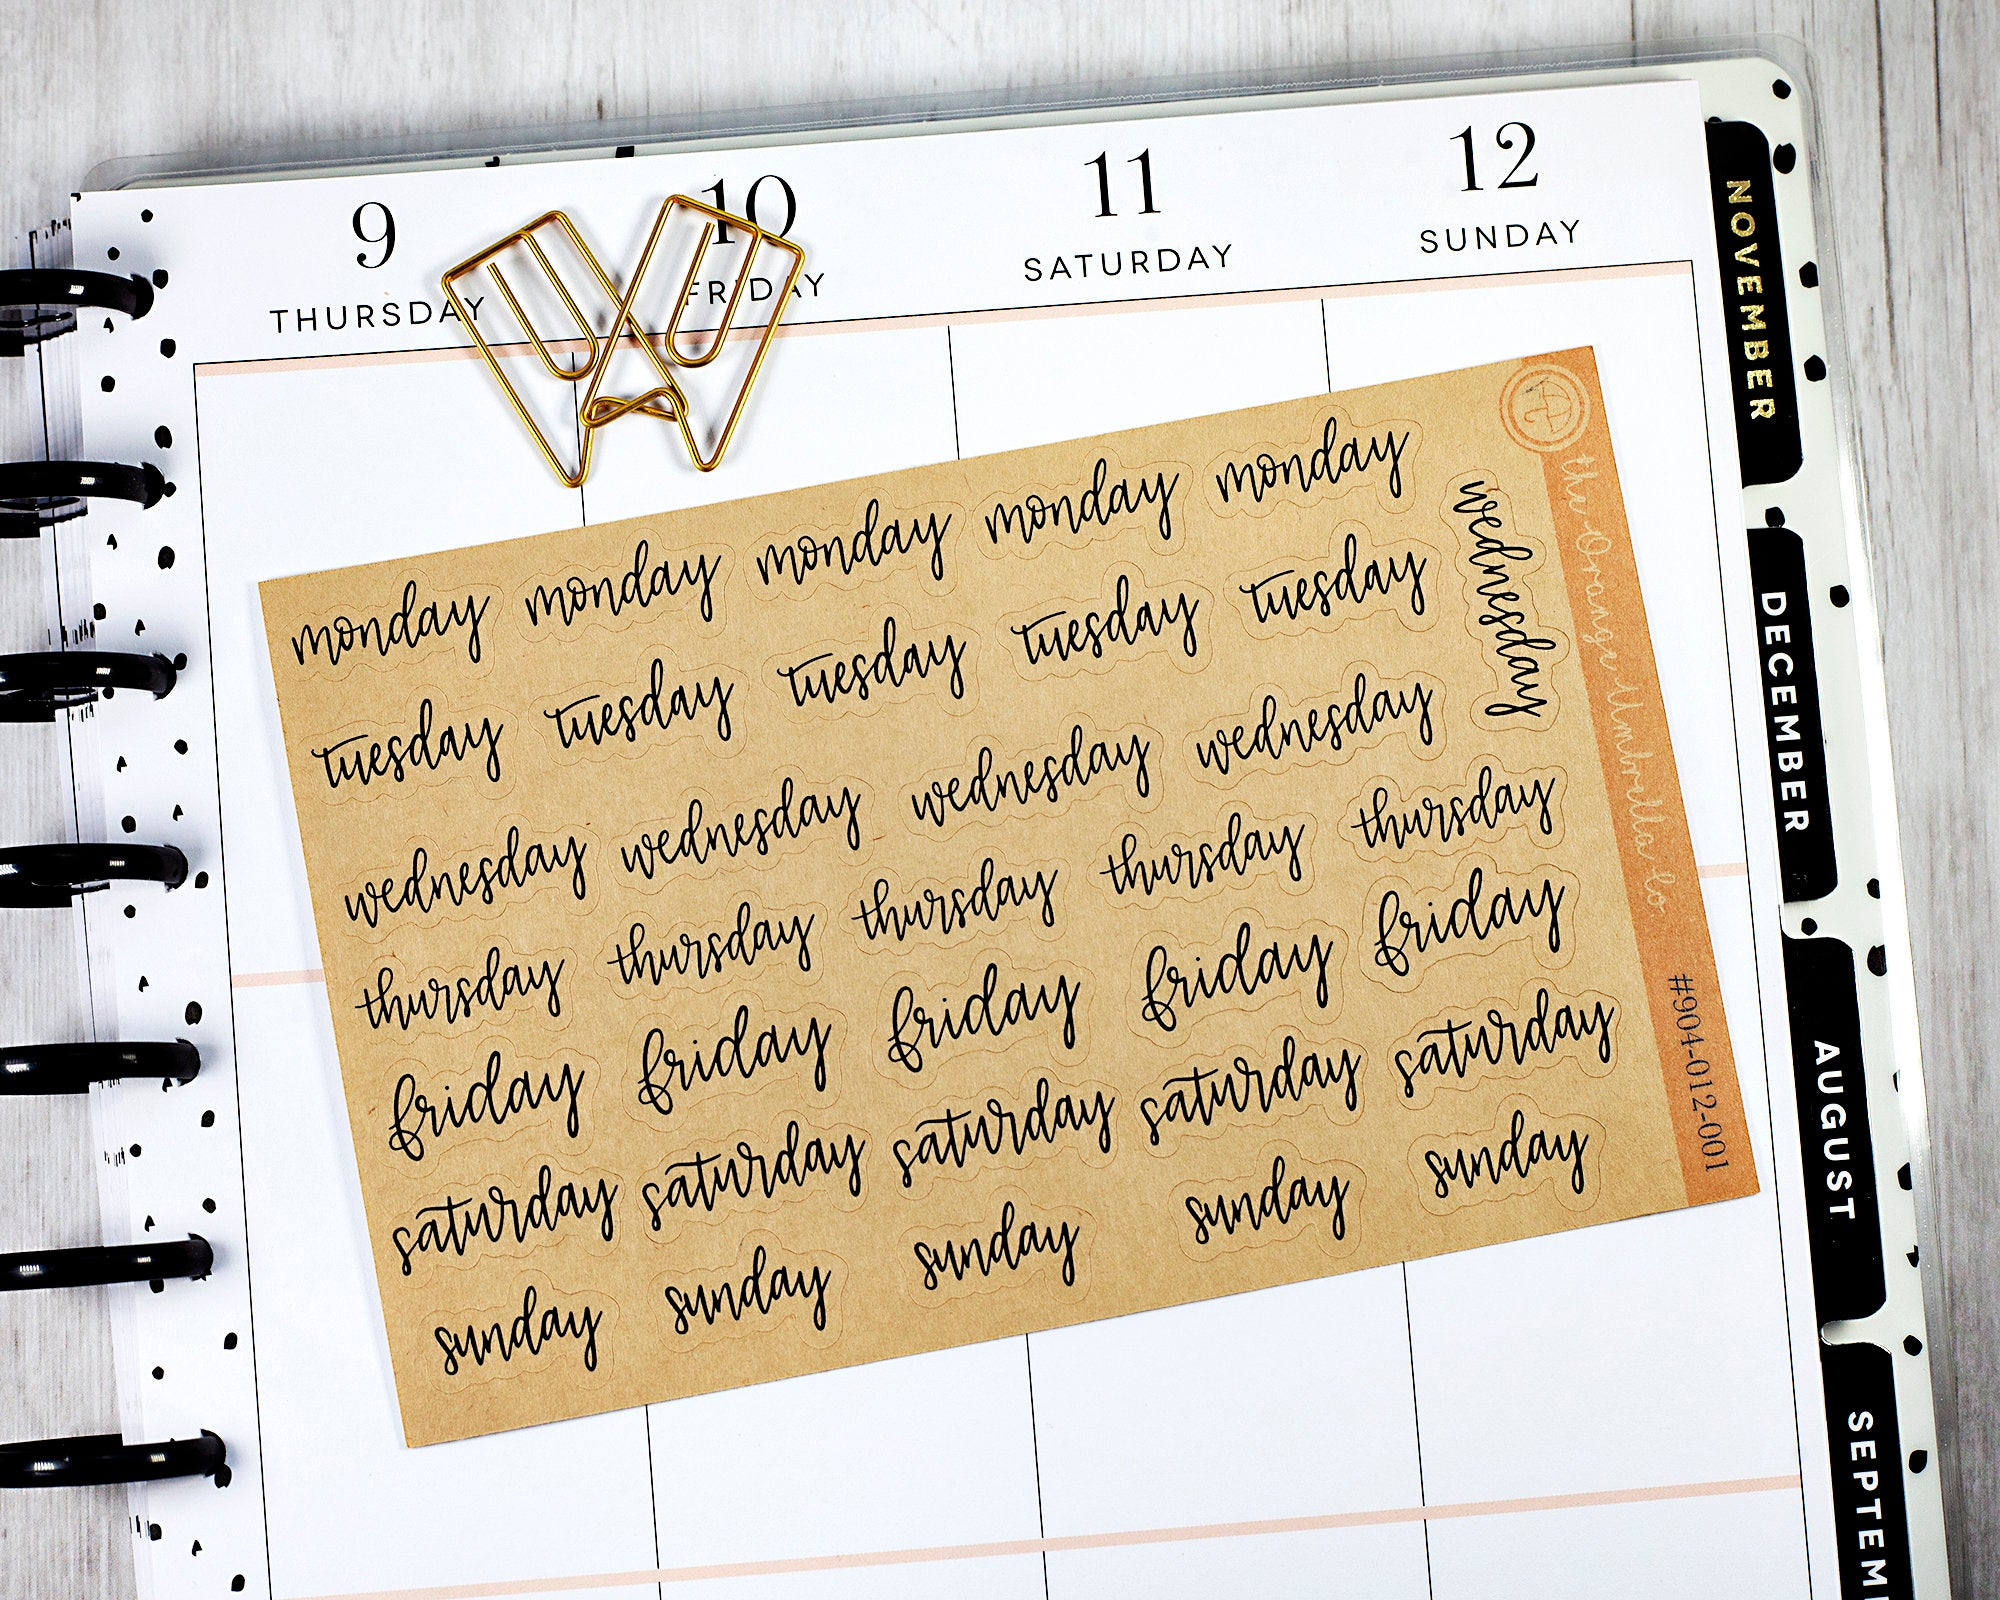 #904-012-001-WH Weekday Stickers ECLP Planner Stickers Day of the Week Header Planner Stickers